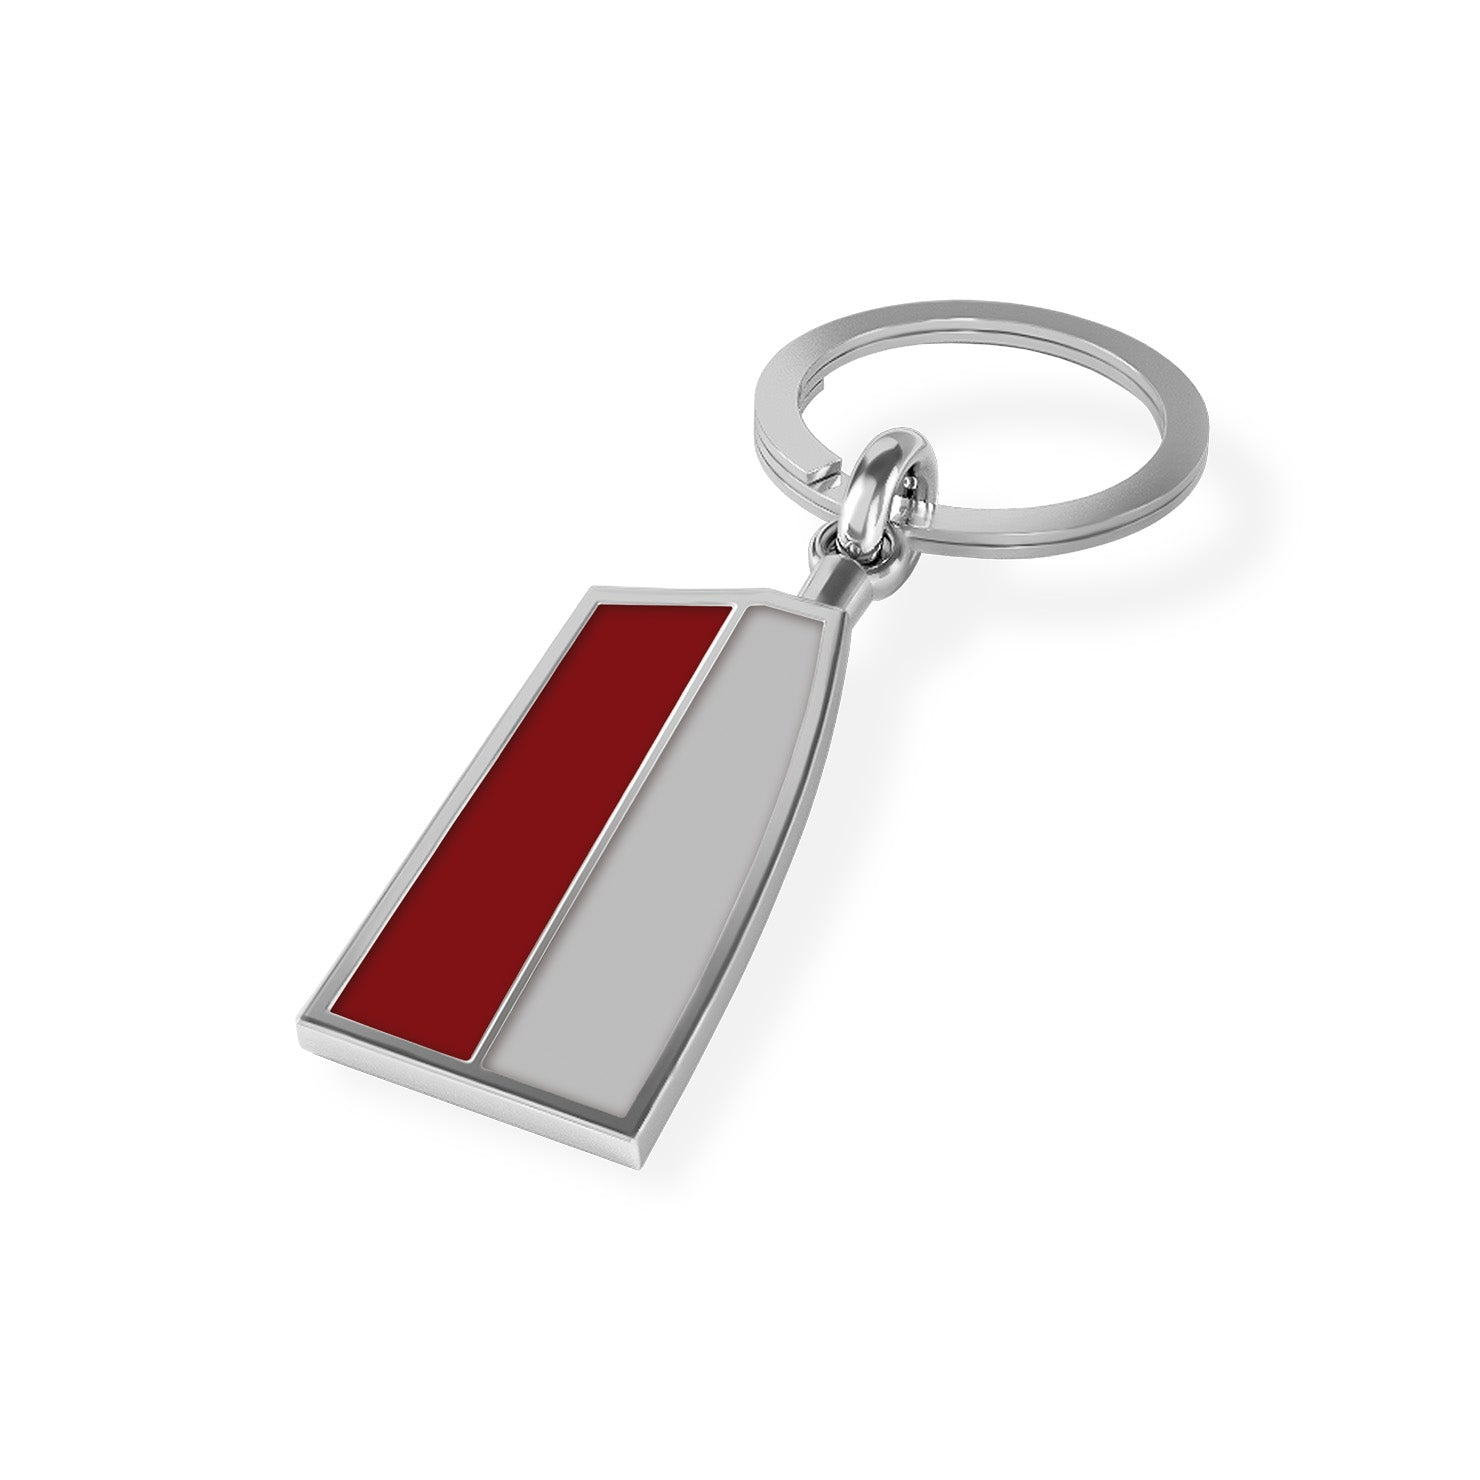 Vesper Key Chain - Strokeside Designs Rowing jewelry- Rowing Gifts Ideas- Rowing Coach Gifts